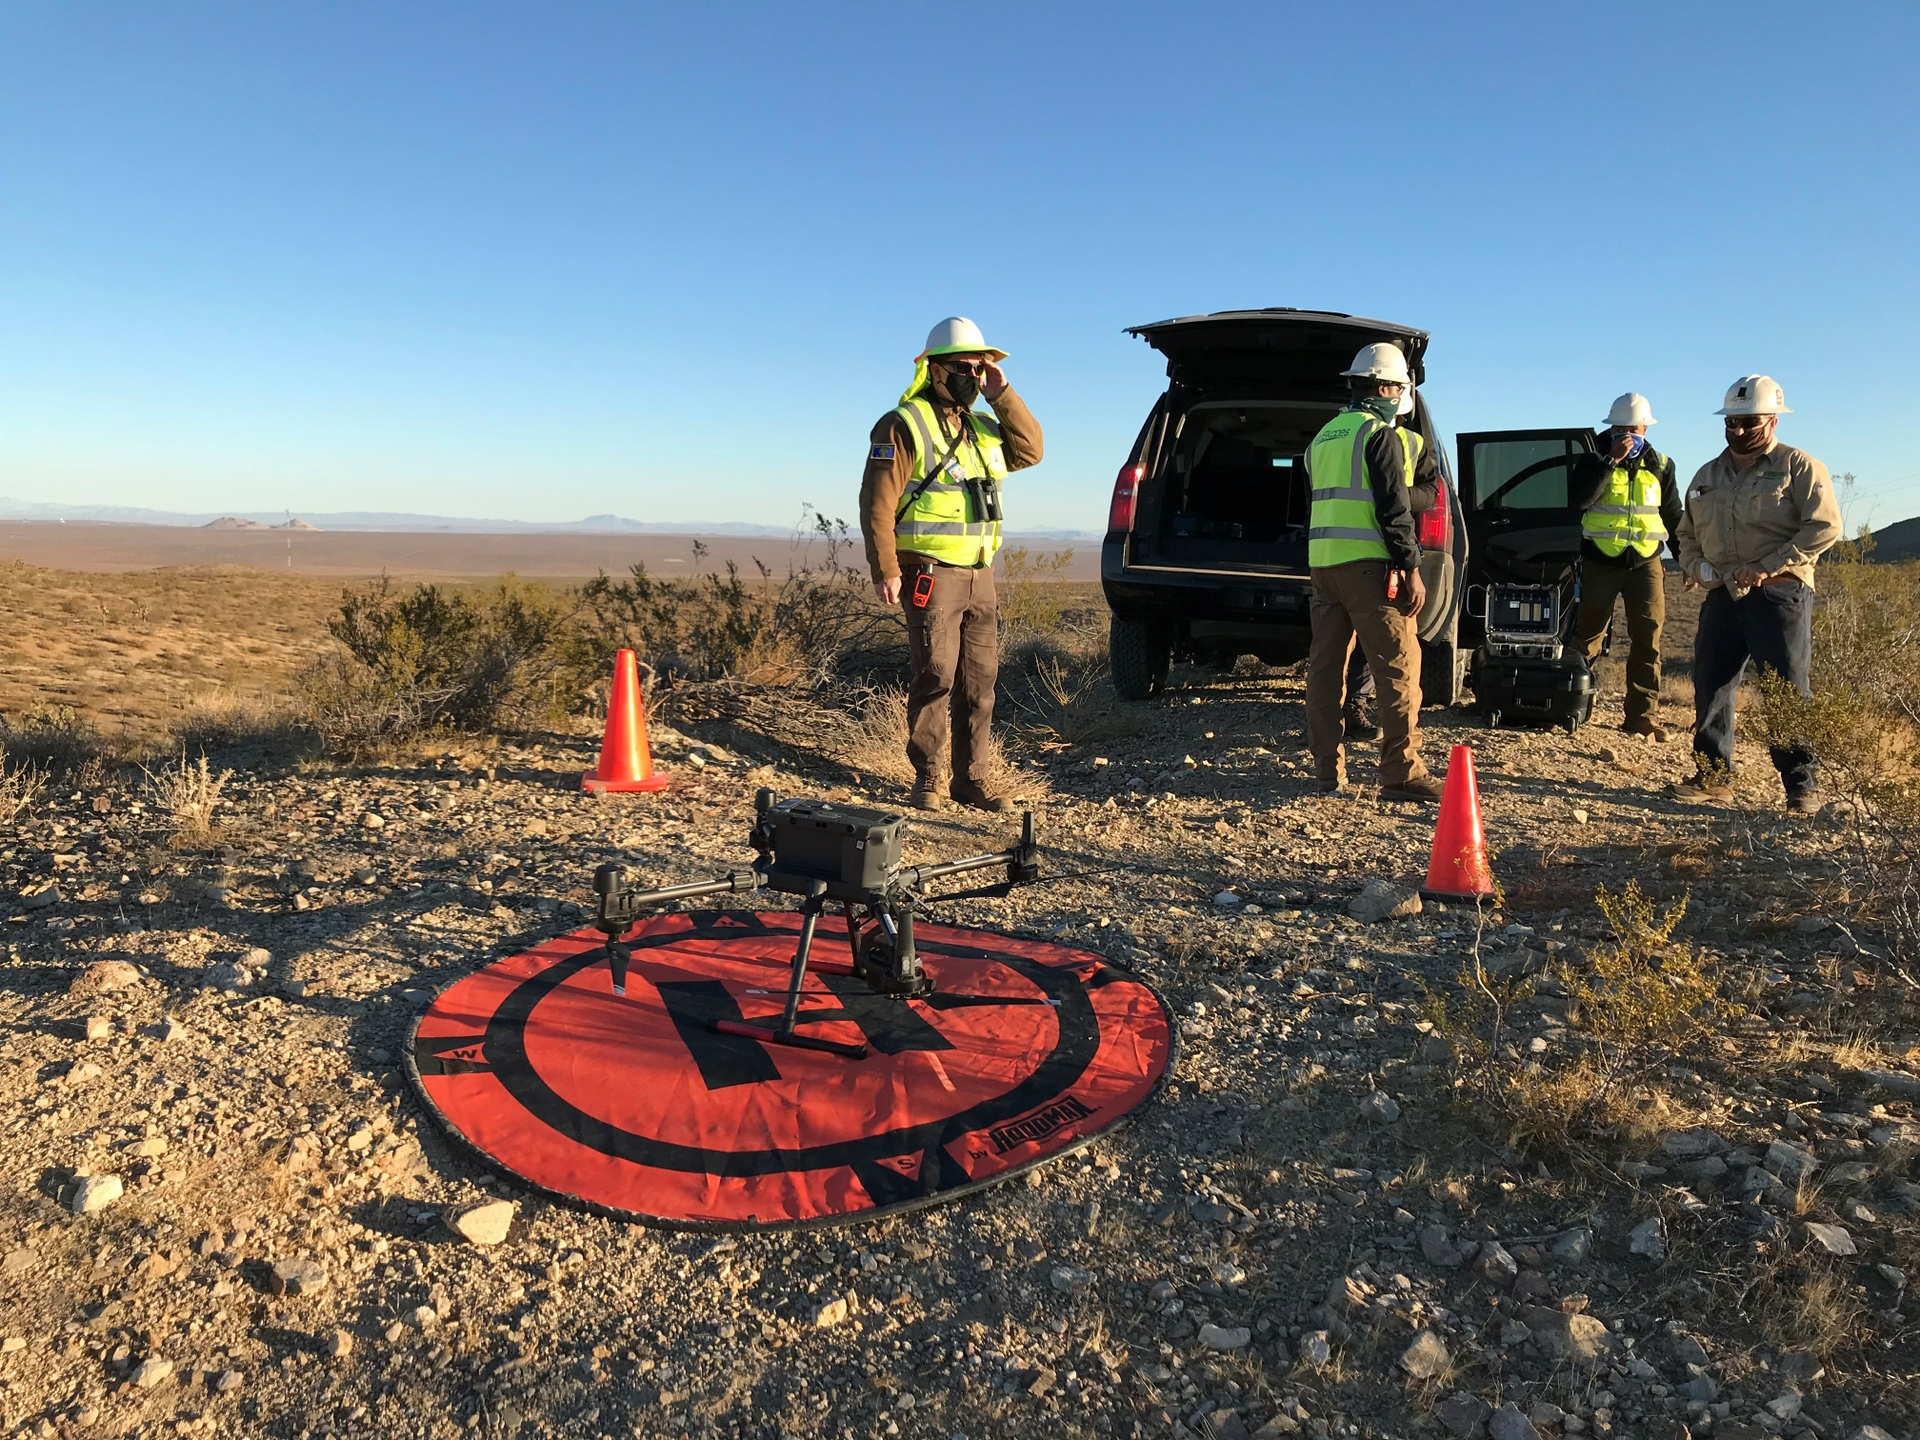 A launch and recovery pad for drones to takeoff and land.